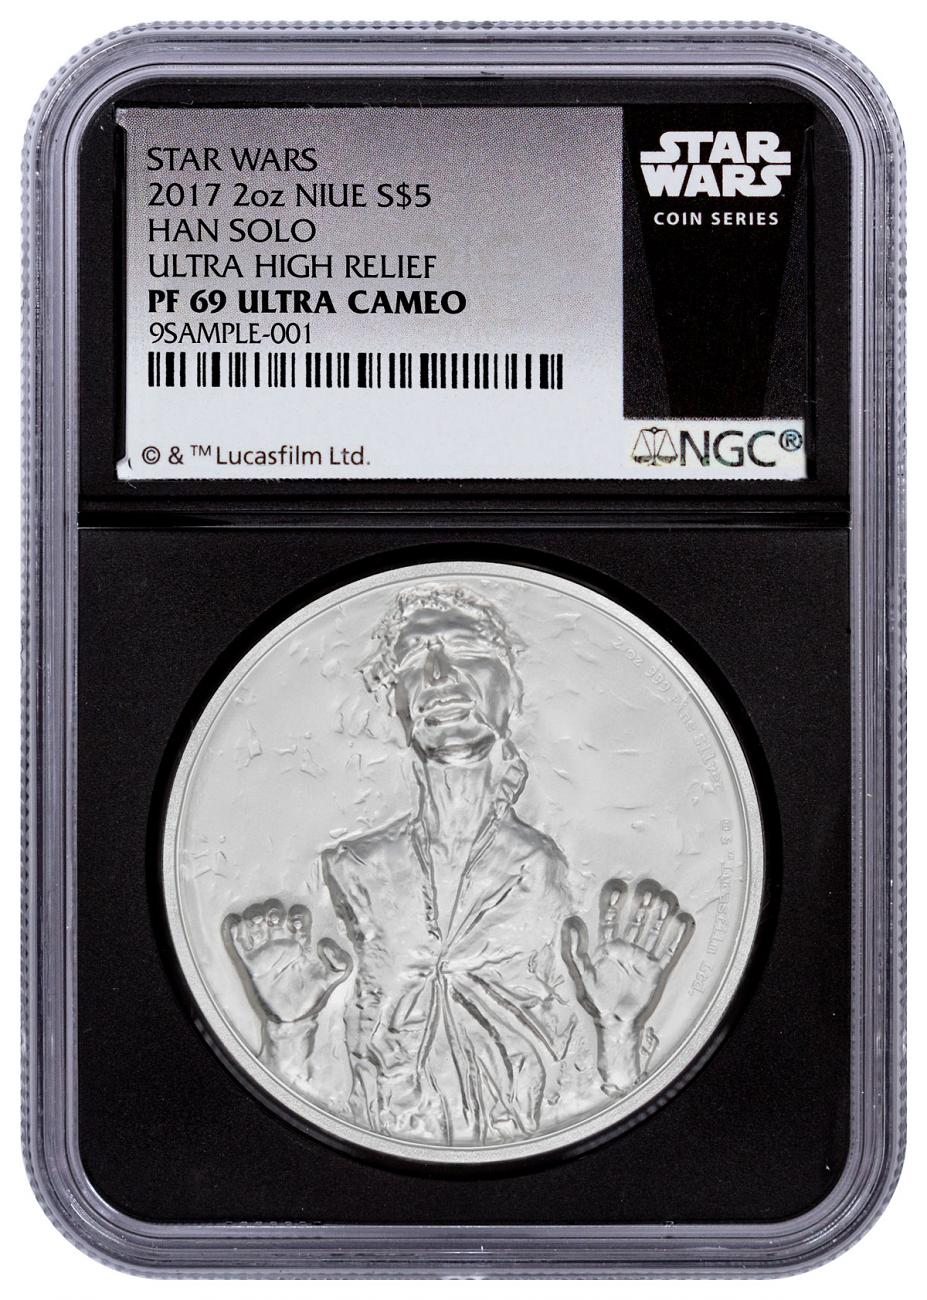 2017 Niue Star Wars Classic - Han Solo Ultra High Relief 2 oz Silver Proof $5 Coin NGC PF69 UC Black Core Holder Exclusive Star Wars Label